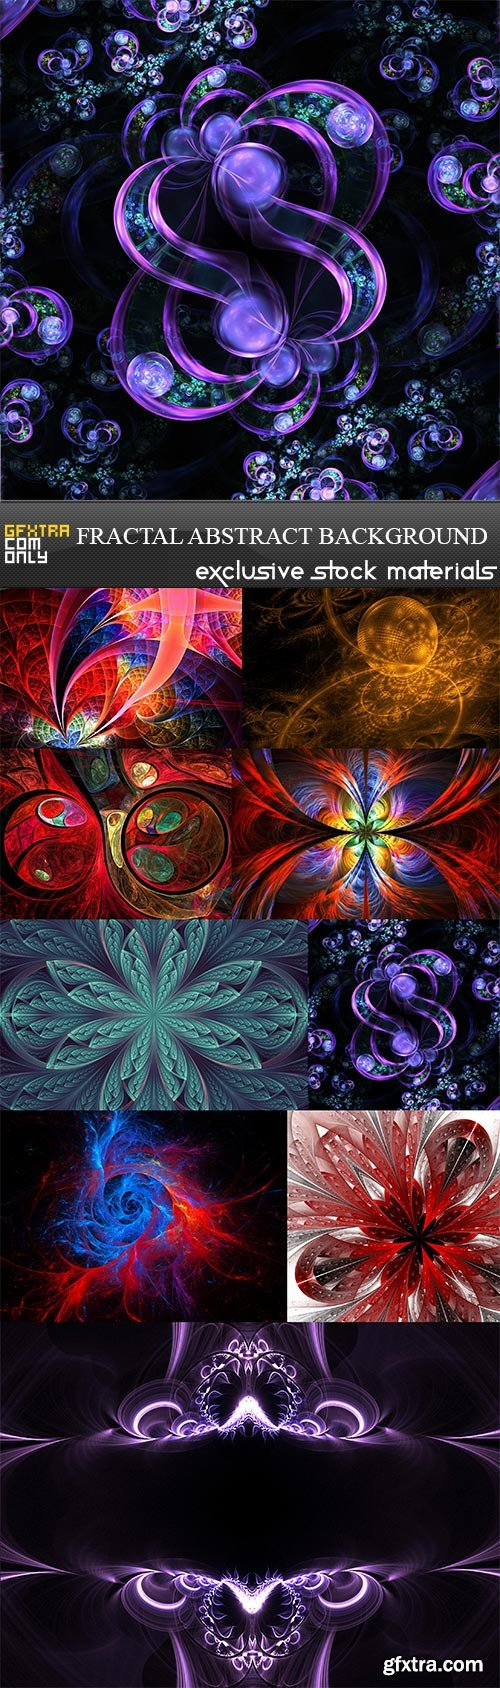 Fractal abstract background, 9  x  UHQ JPEG